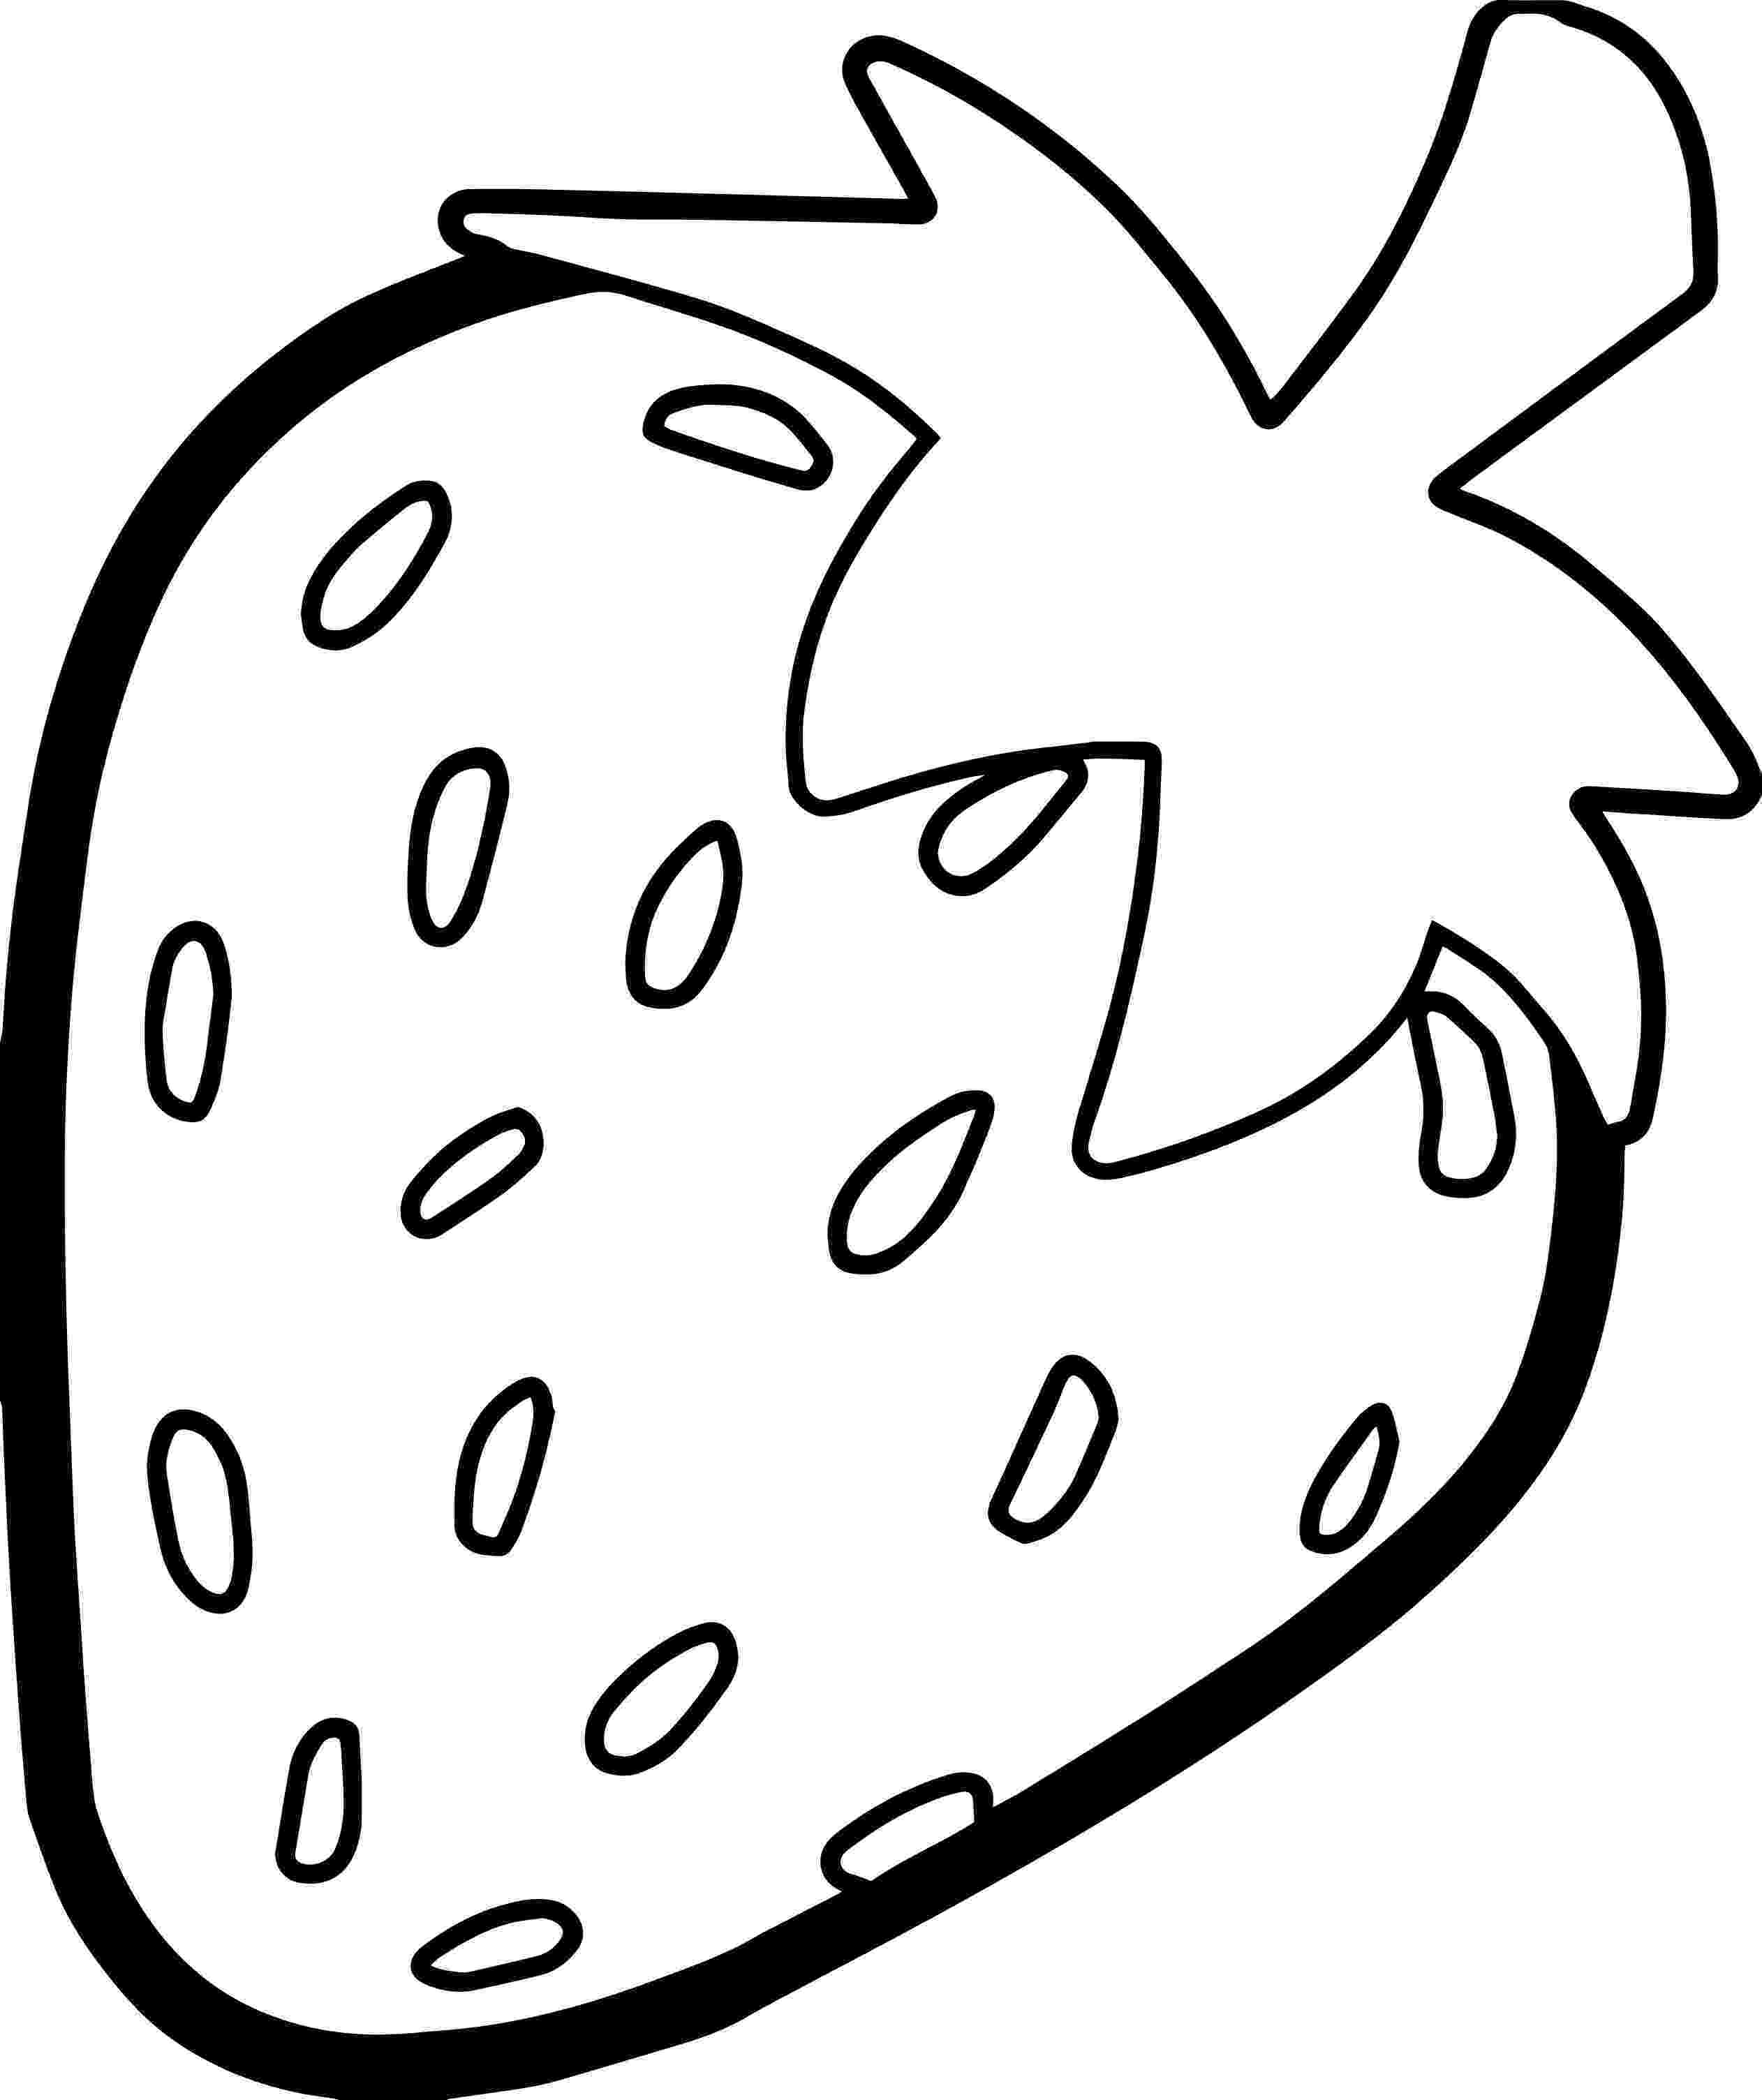 strawberry picture for coloring strawberry coloring pages downloadable and printable images coloring for picture strawberry